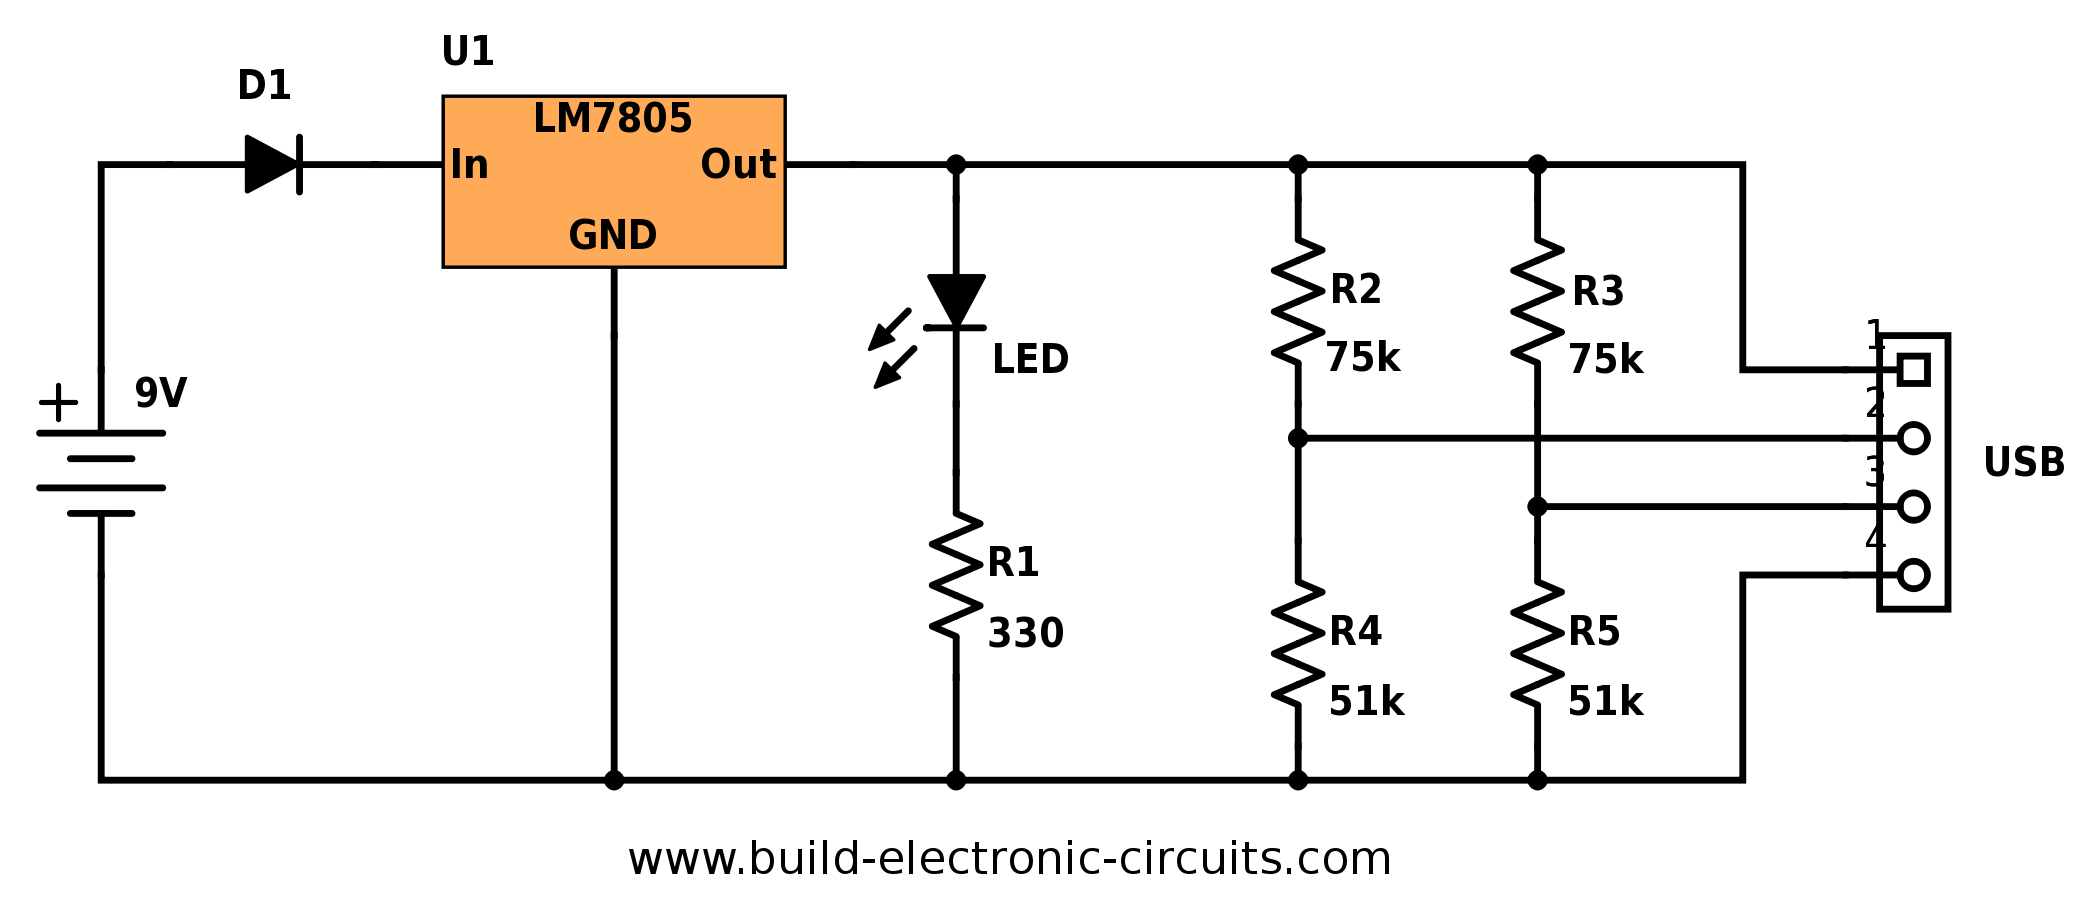 12 Volt Usb Charging Port Wiring Diagram